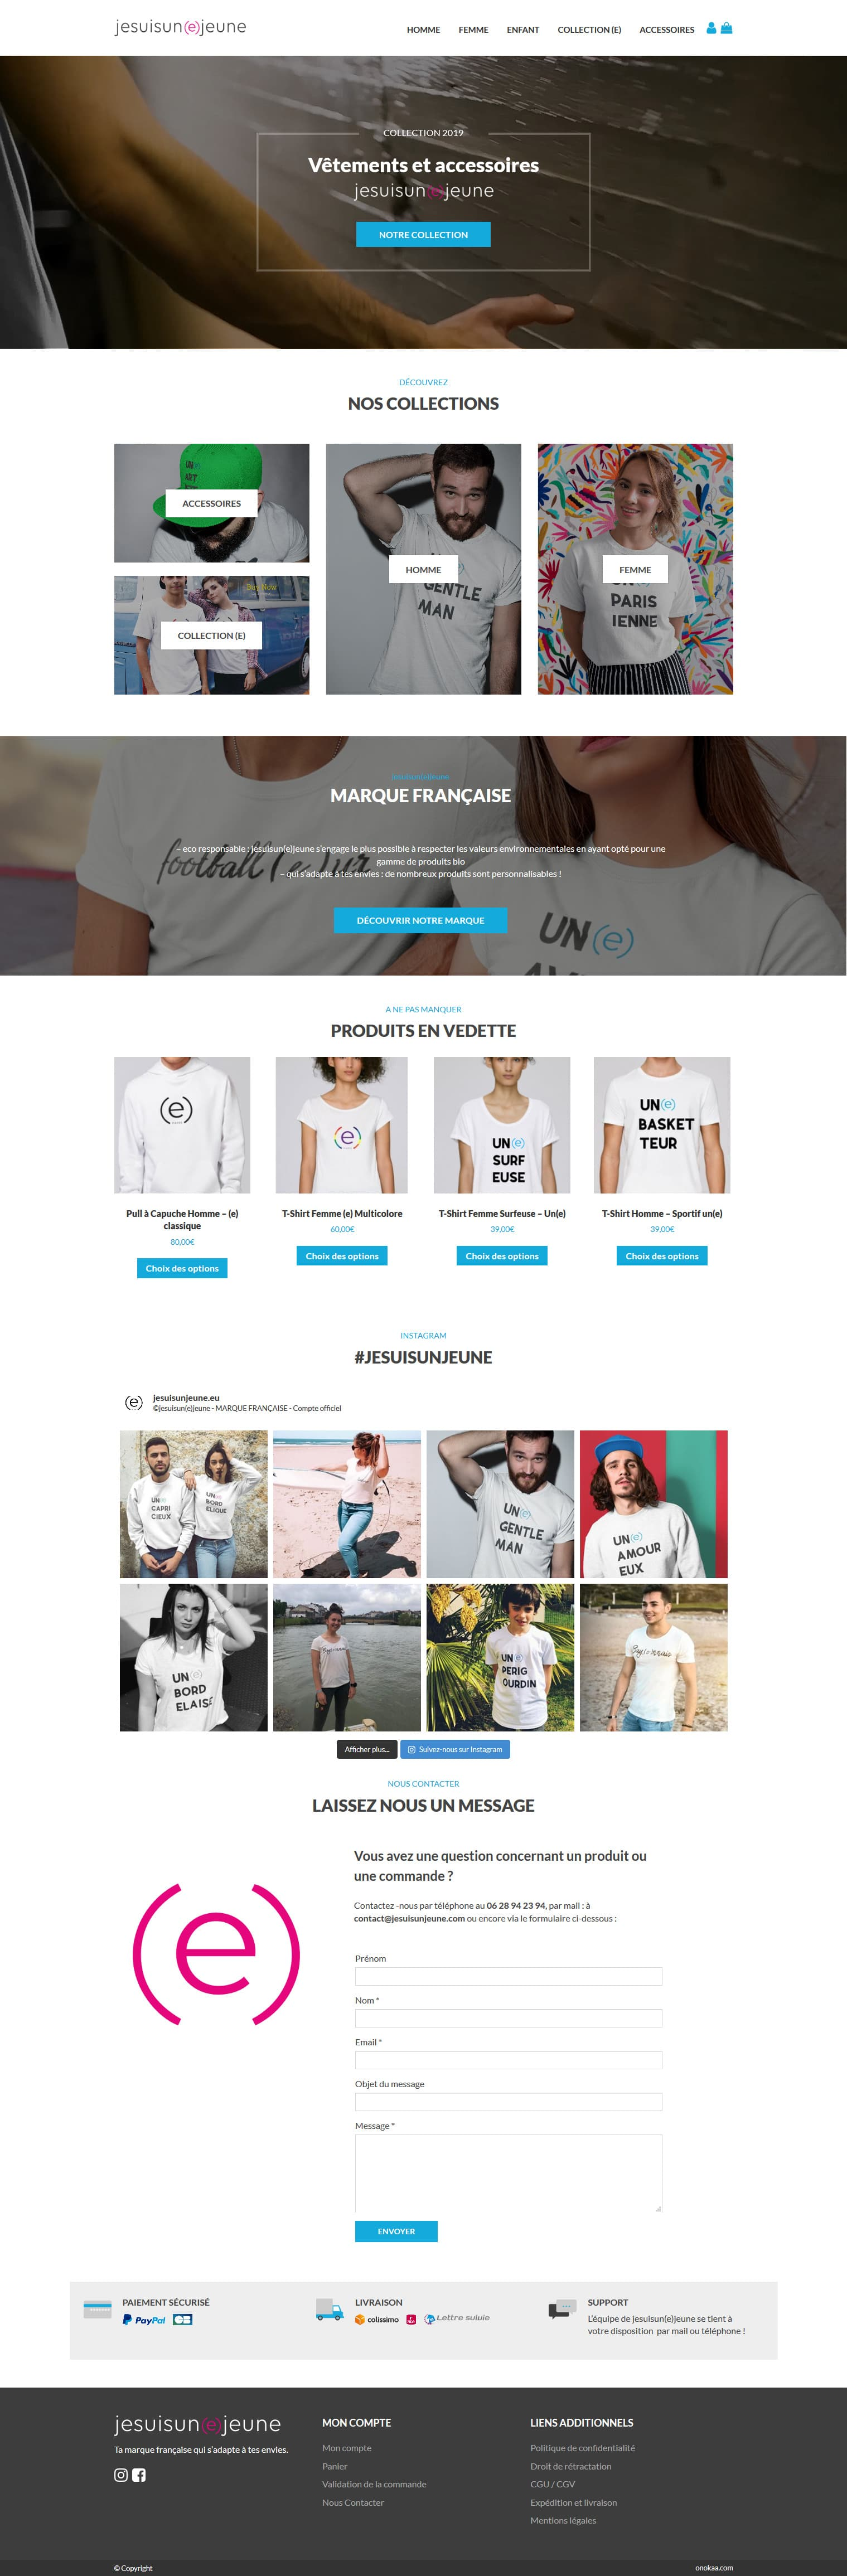 Site e-commerce jesuisunjeune